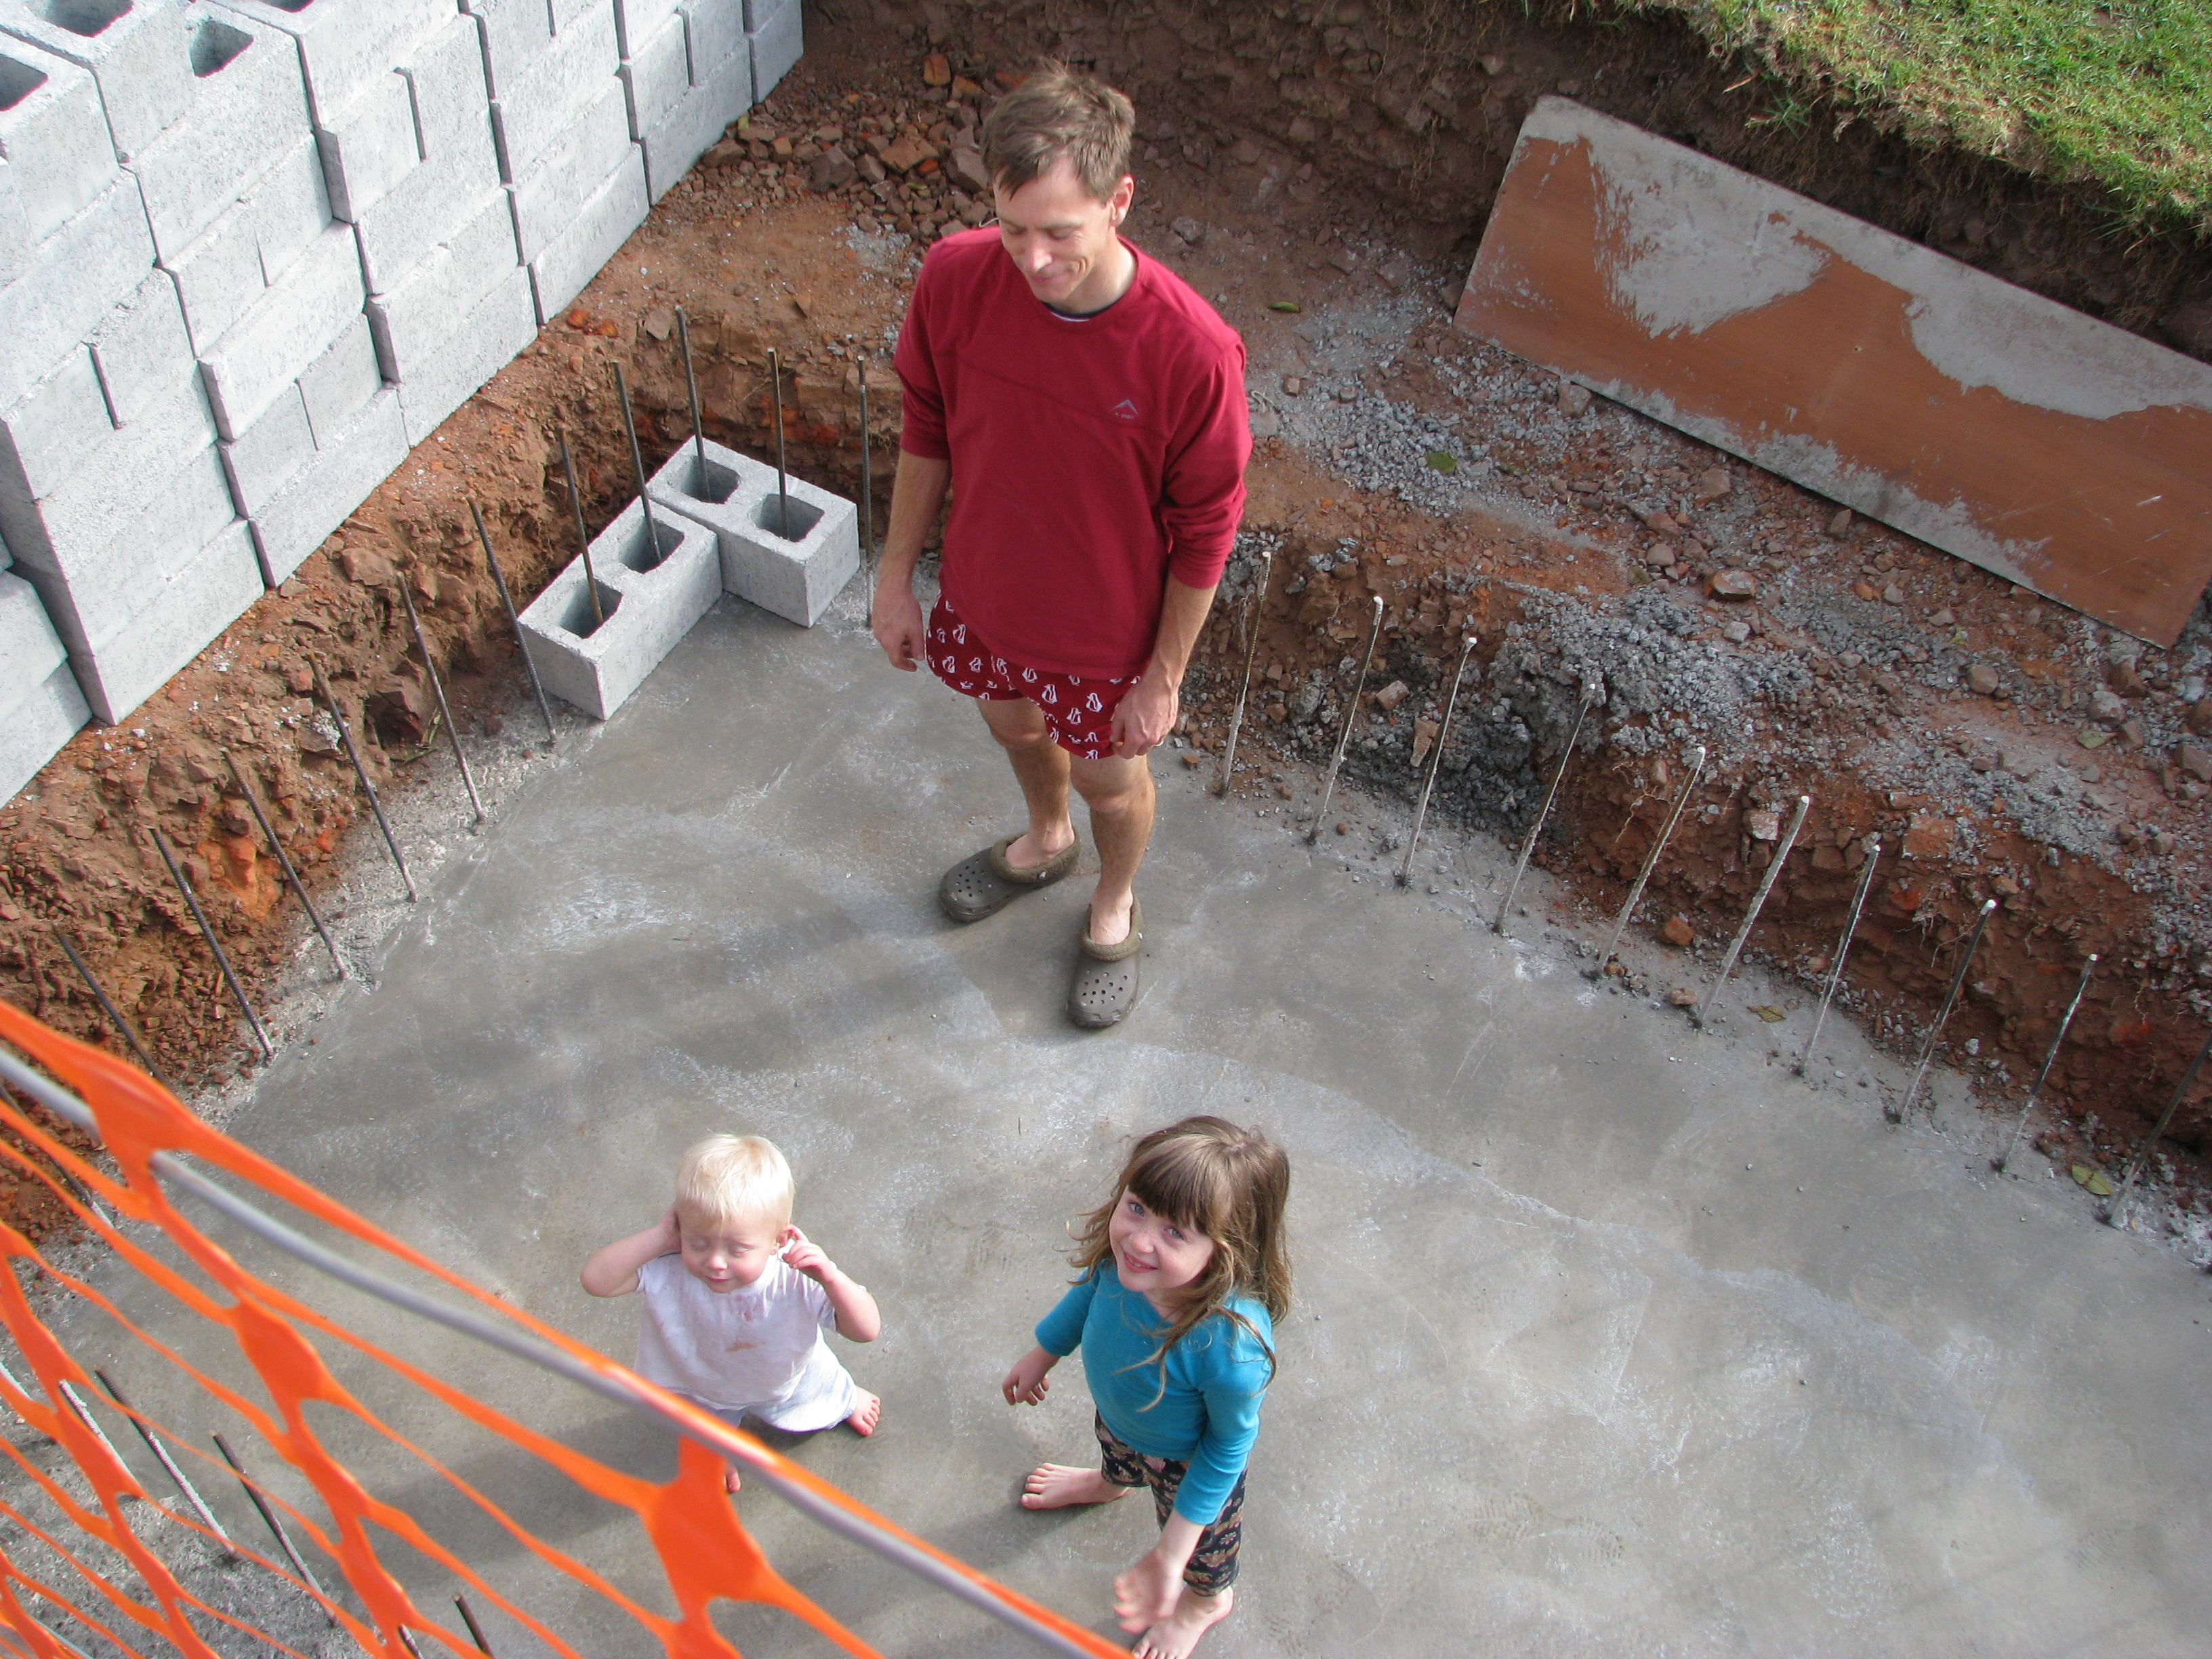 Natural swimming pool construction skyhooks and other - How soon can you swim after plastering pool ...